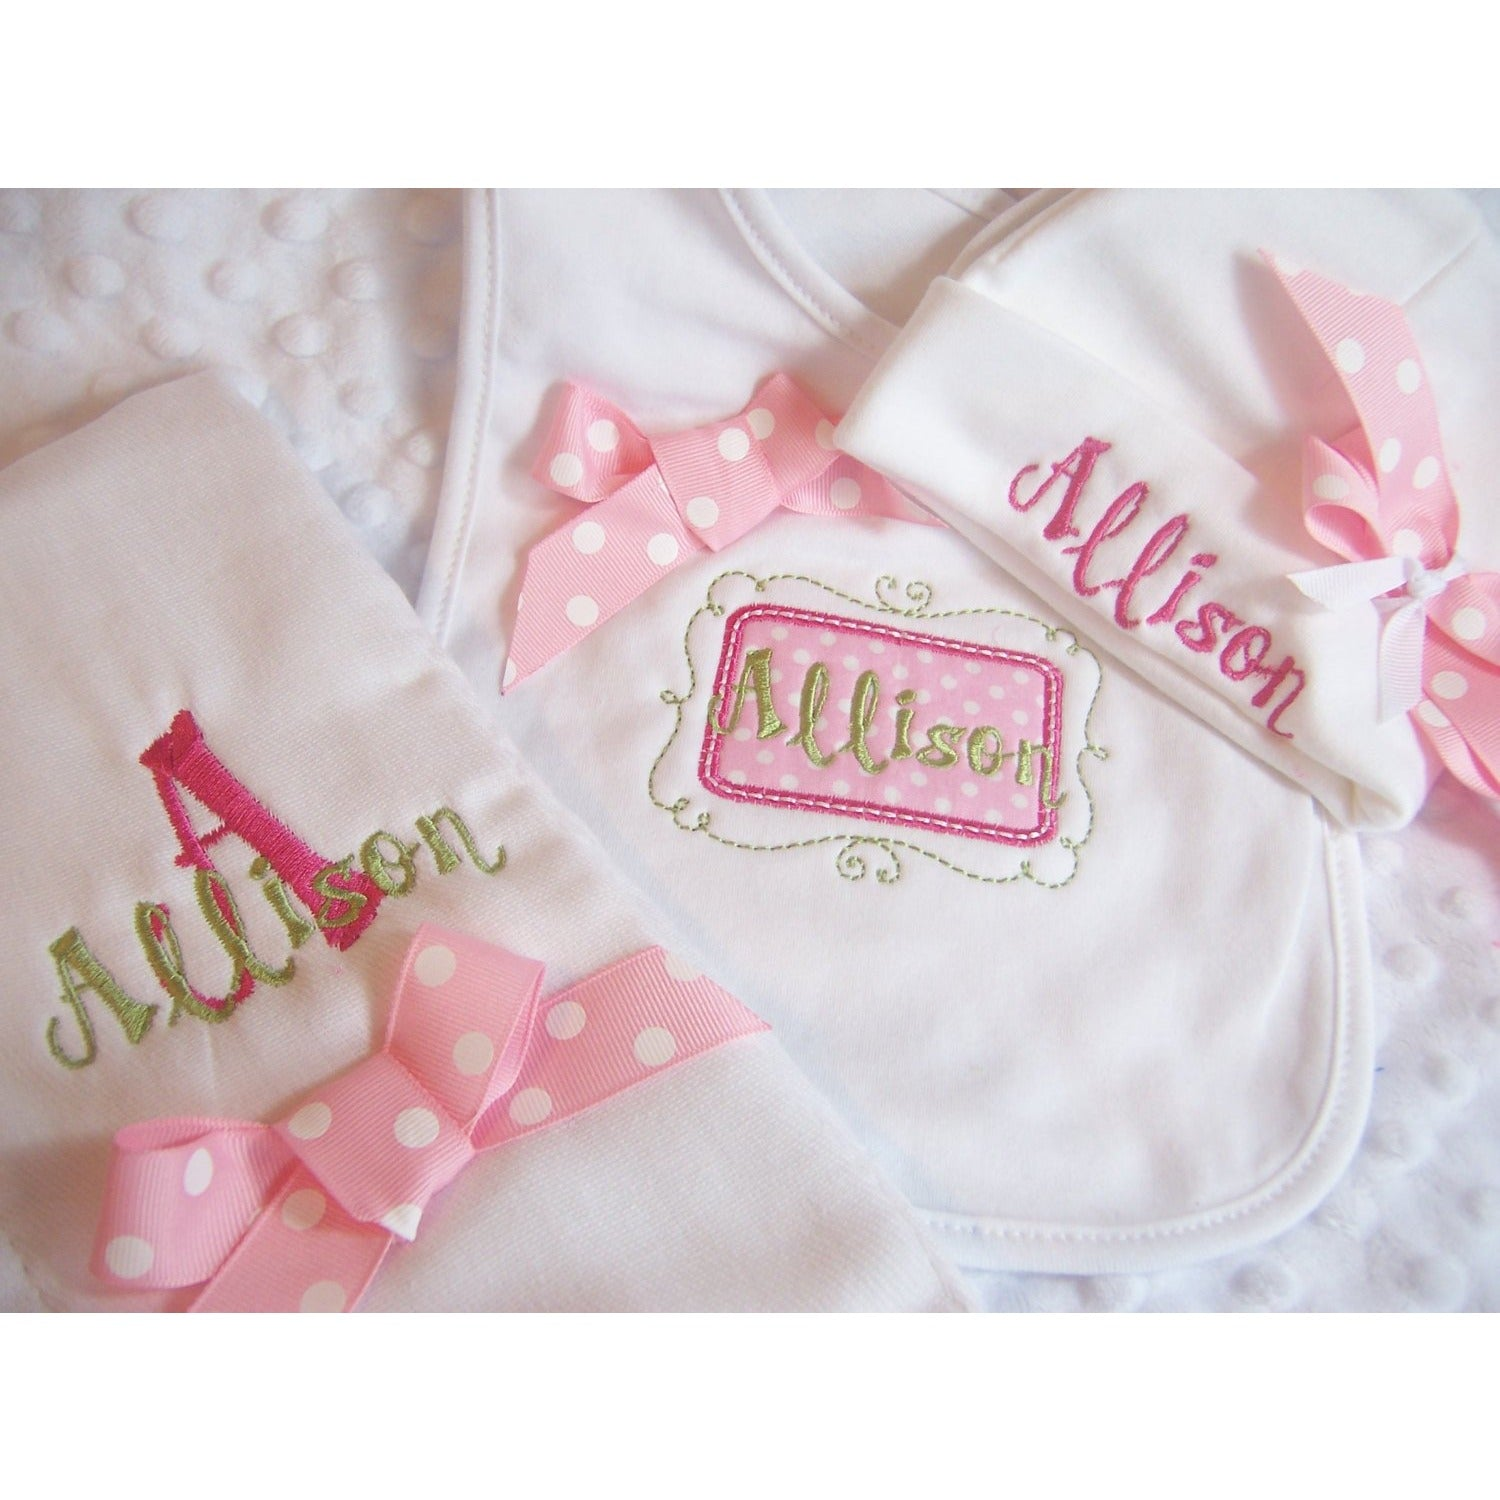 Personalized Girls Newborn Gift Set, Burp, Bib, and Hat, monogrammed in pink and green - Jennifer Noel Designs